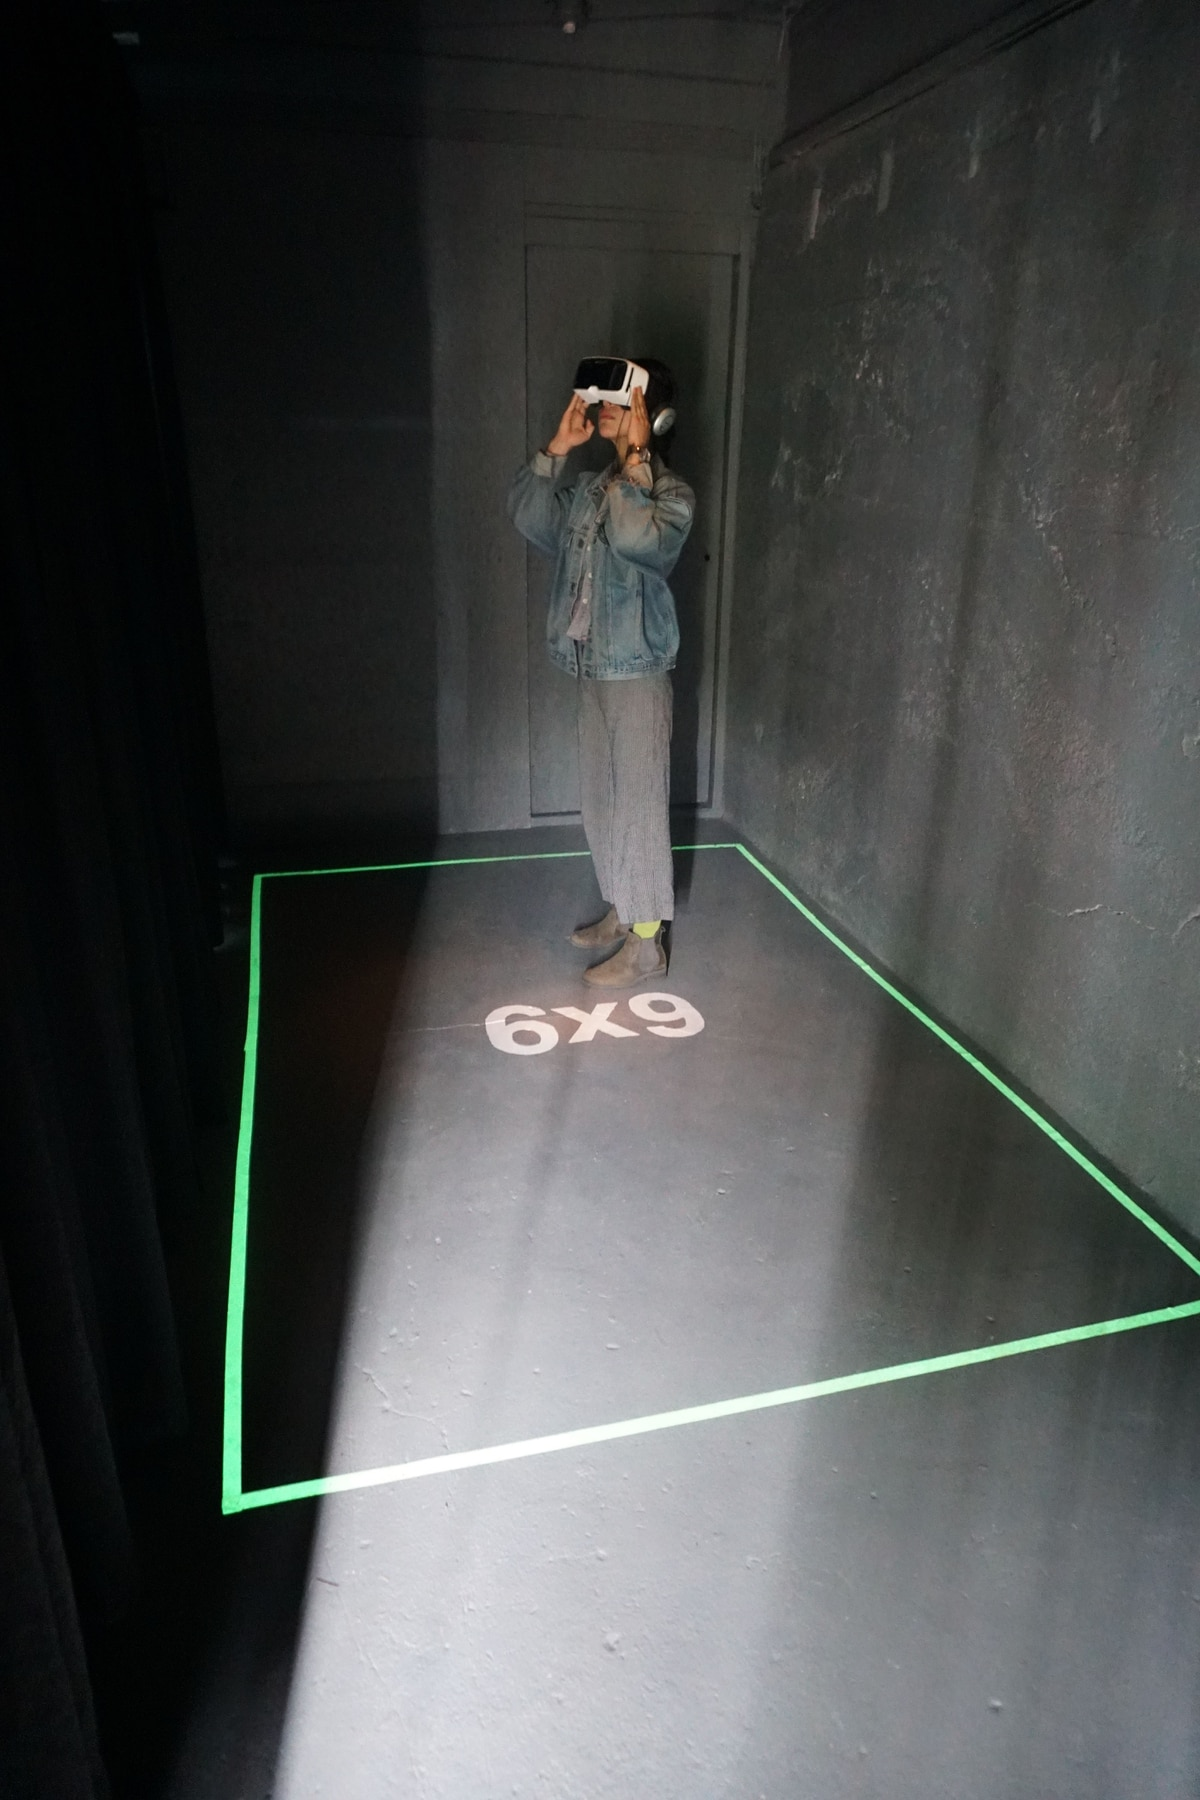 A VR Program That Attempts to Replicate the Experience of